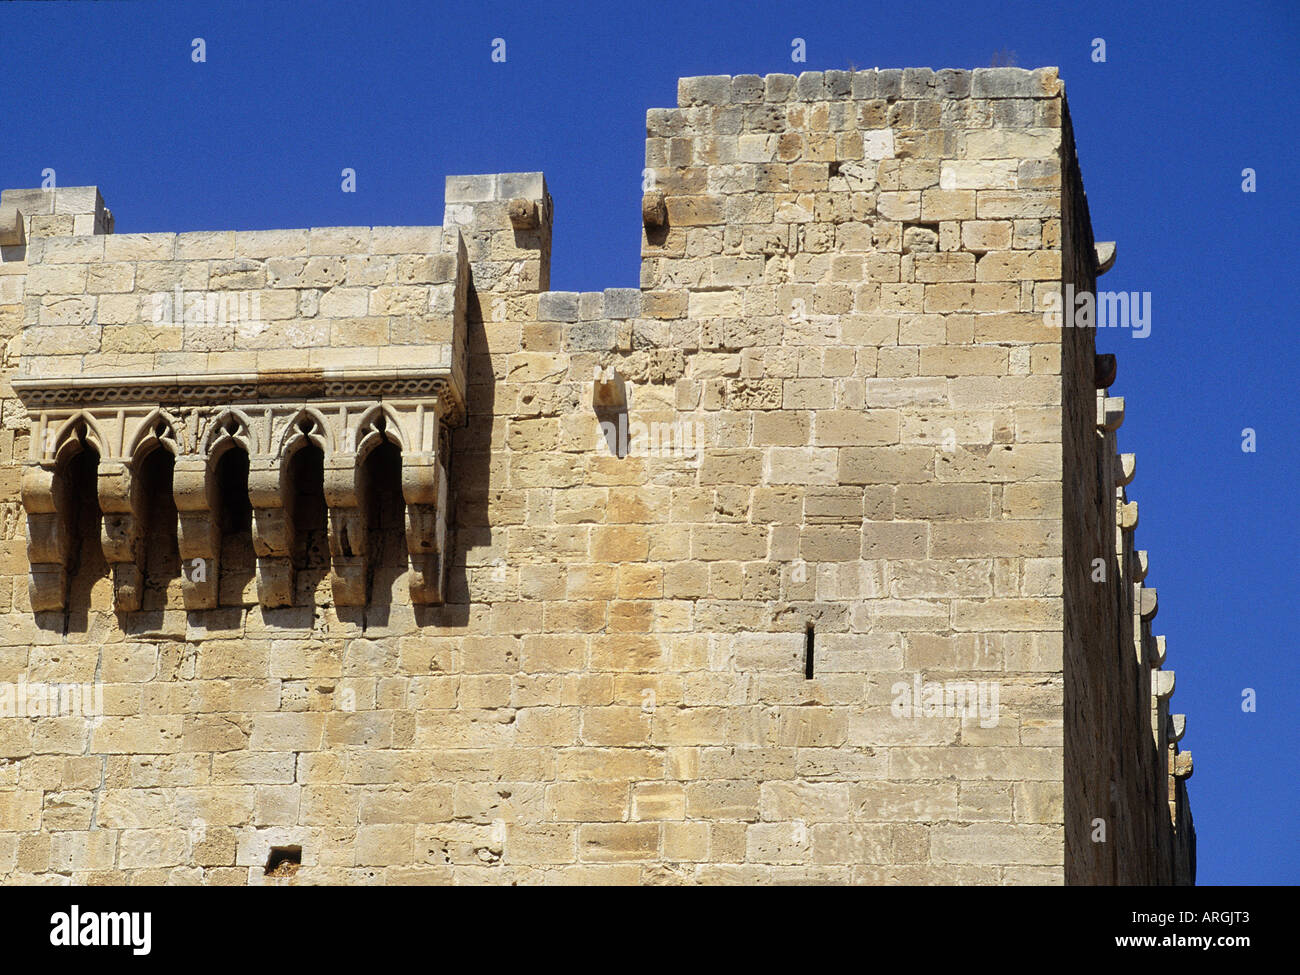 The machicolations and crenels of Kolossi Castle built in 1302 by the Knights of St John - Stock Image